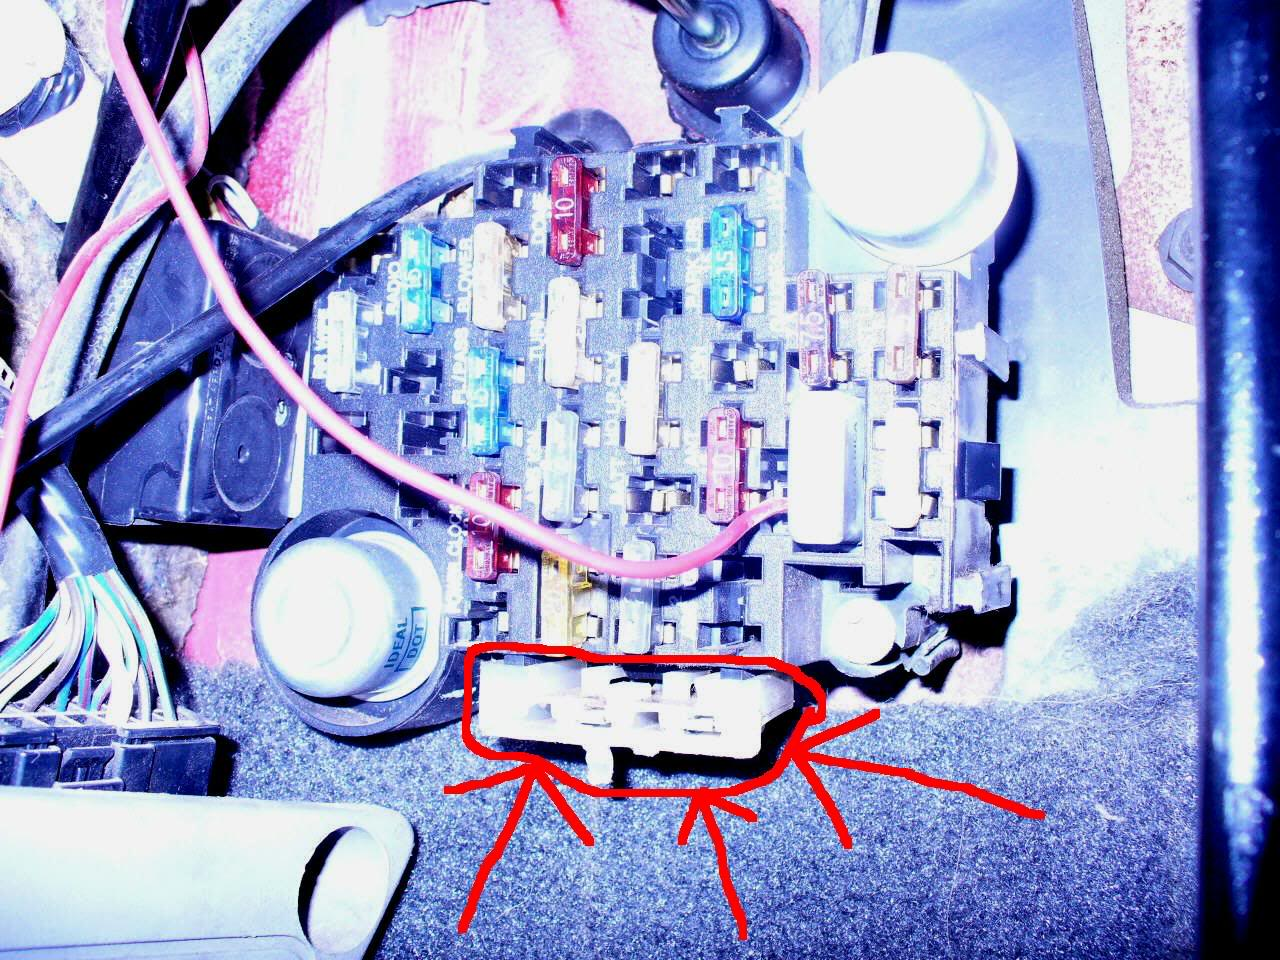 hight resolution of wiper circuit breaker jeep cherokee forum 1996 jeep cherokee fuse panel 1995 jeep cherokee wiper wiring diagram